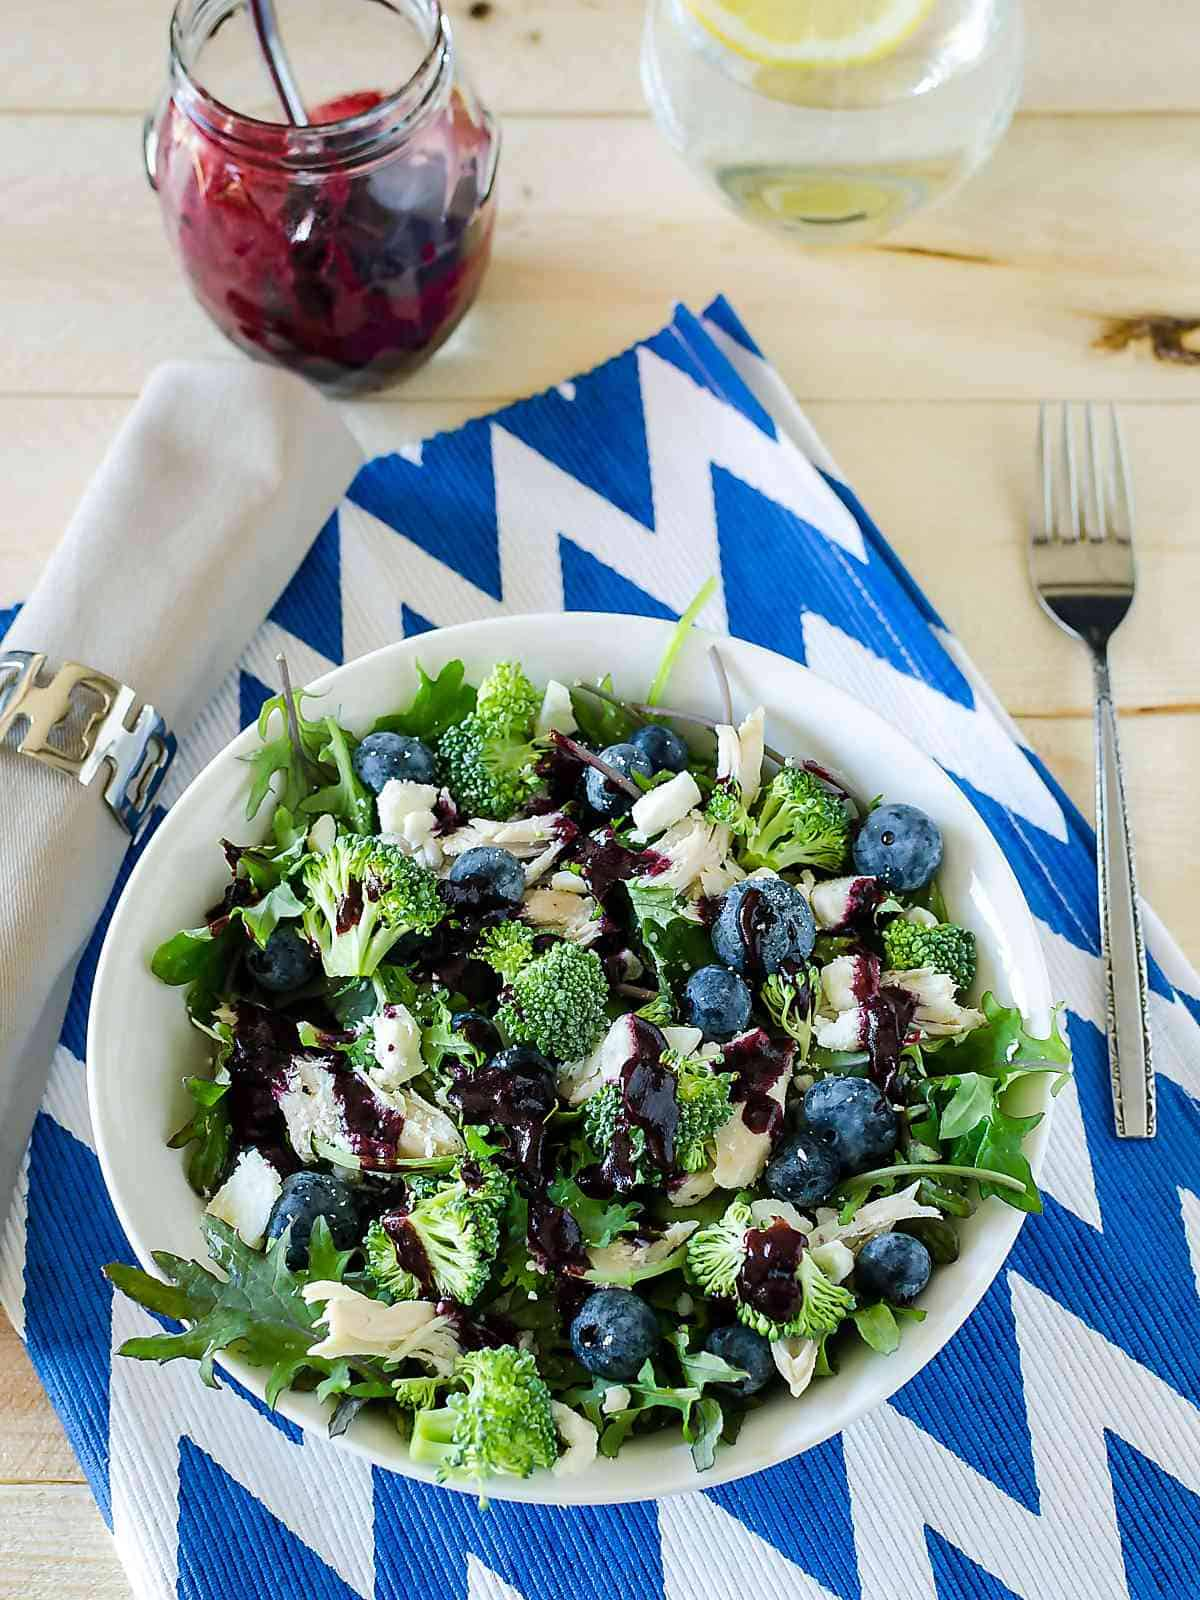 baby kale broccoli salad with blueberries